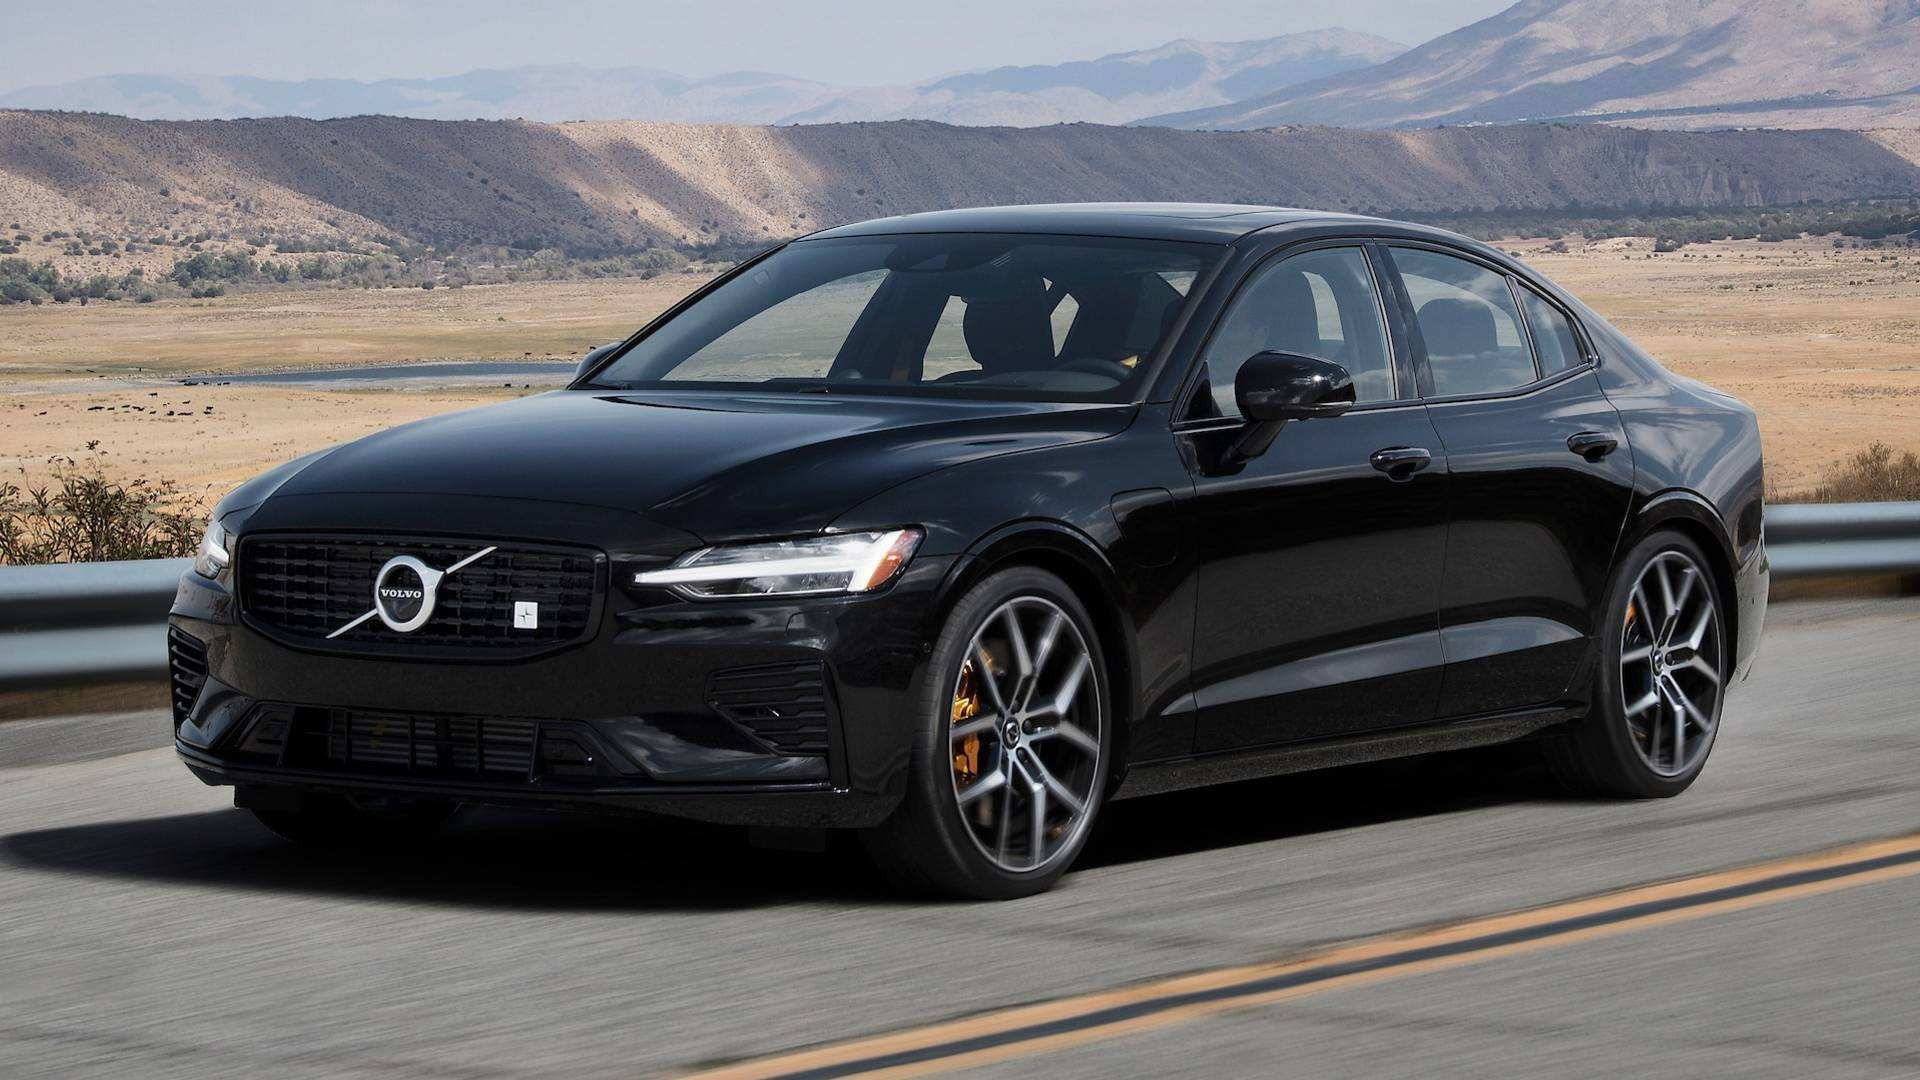 24 Great S60 Volvo 2019 Specs and Review by S60 Volvo 2019